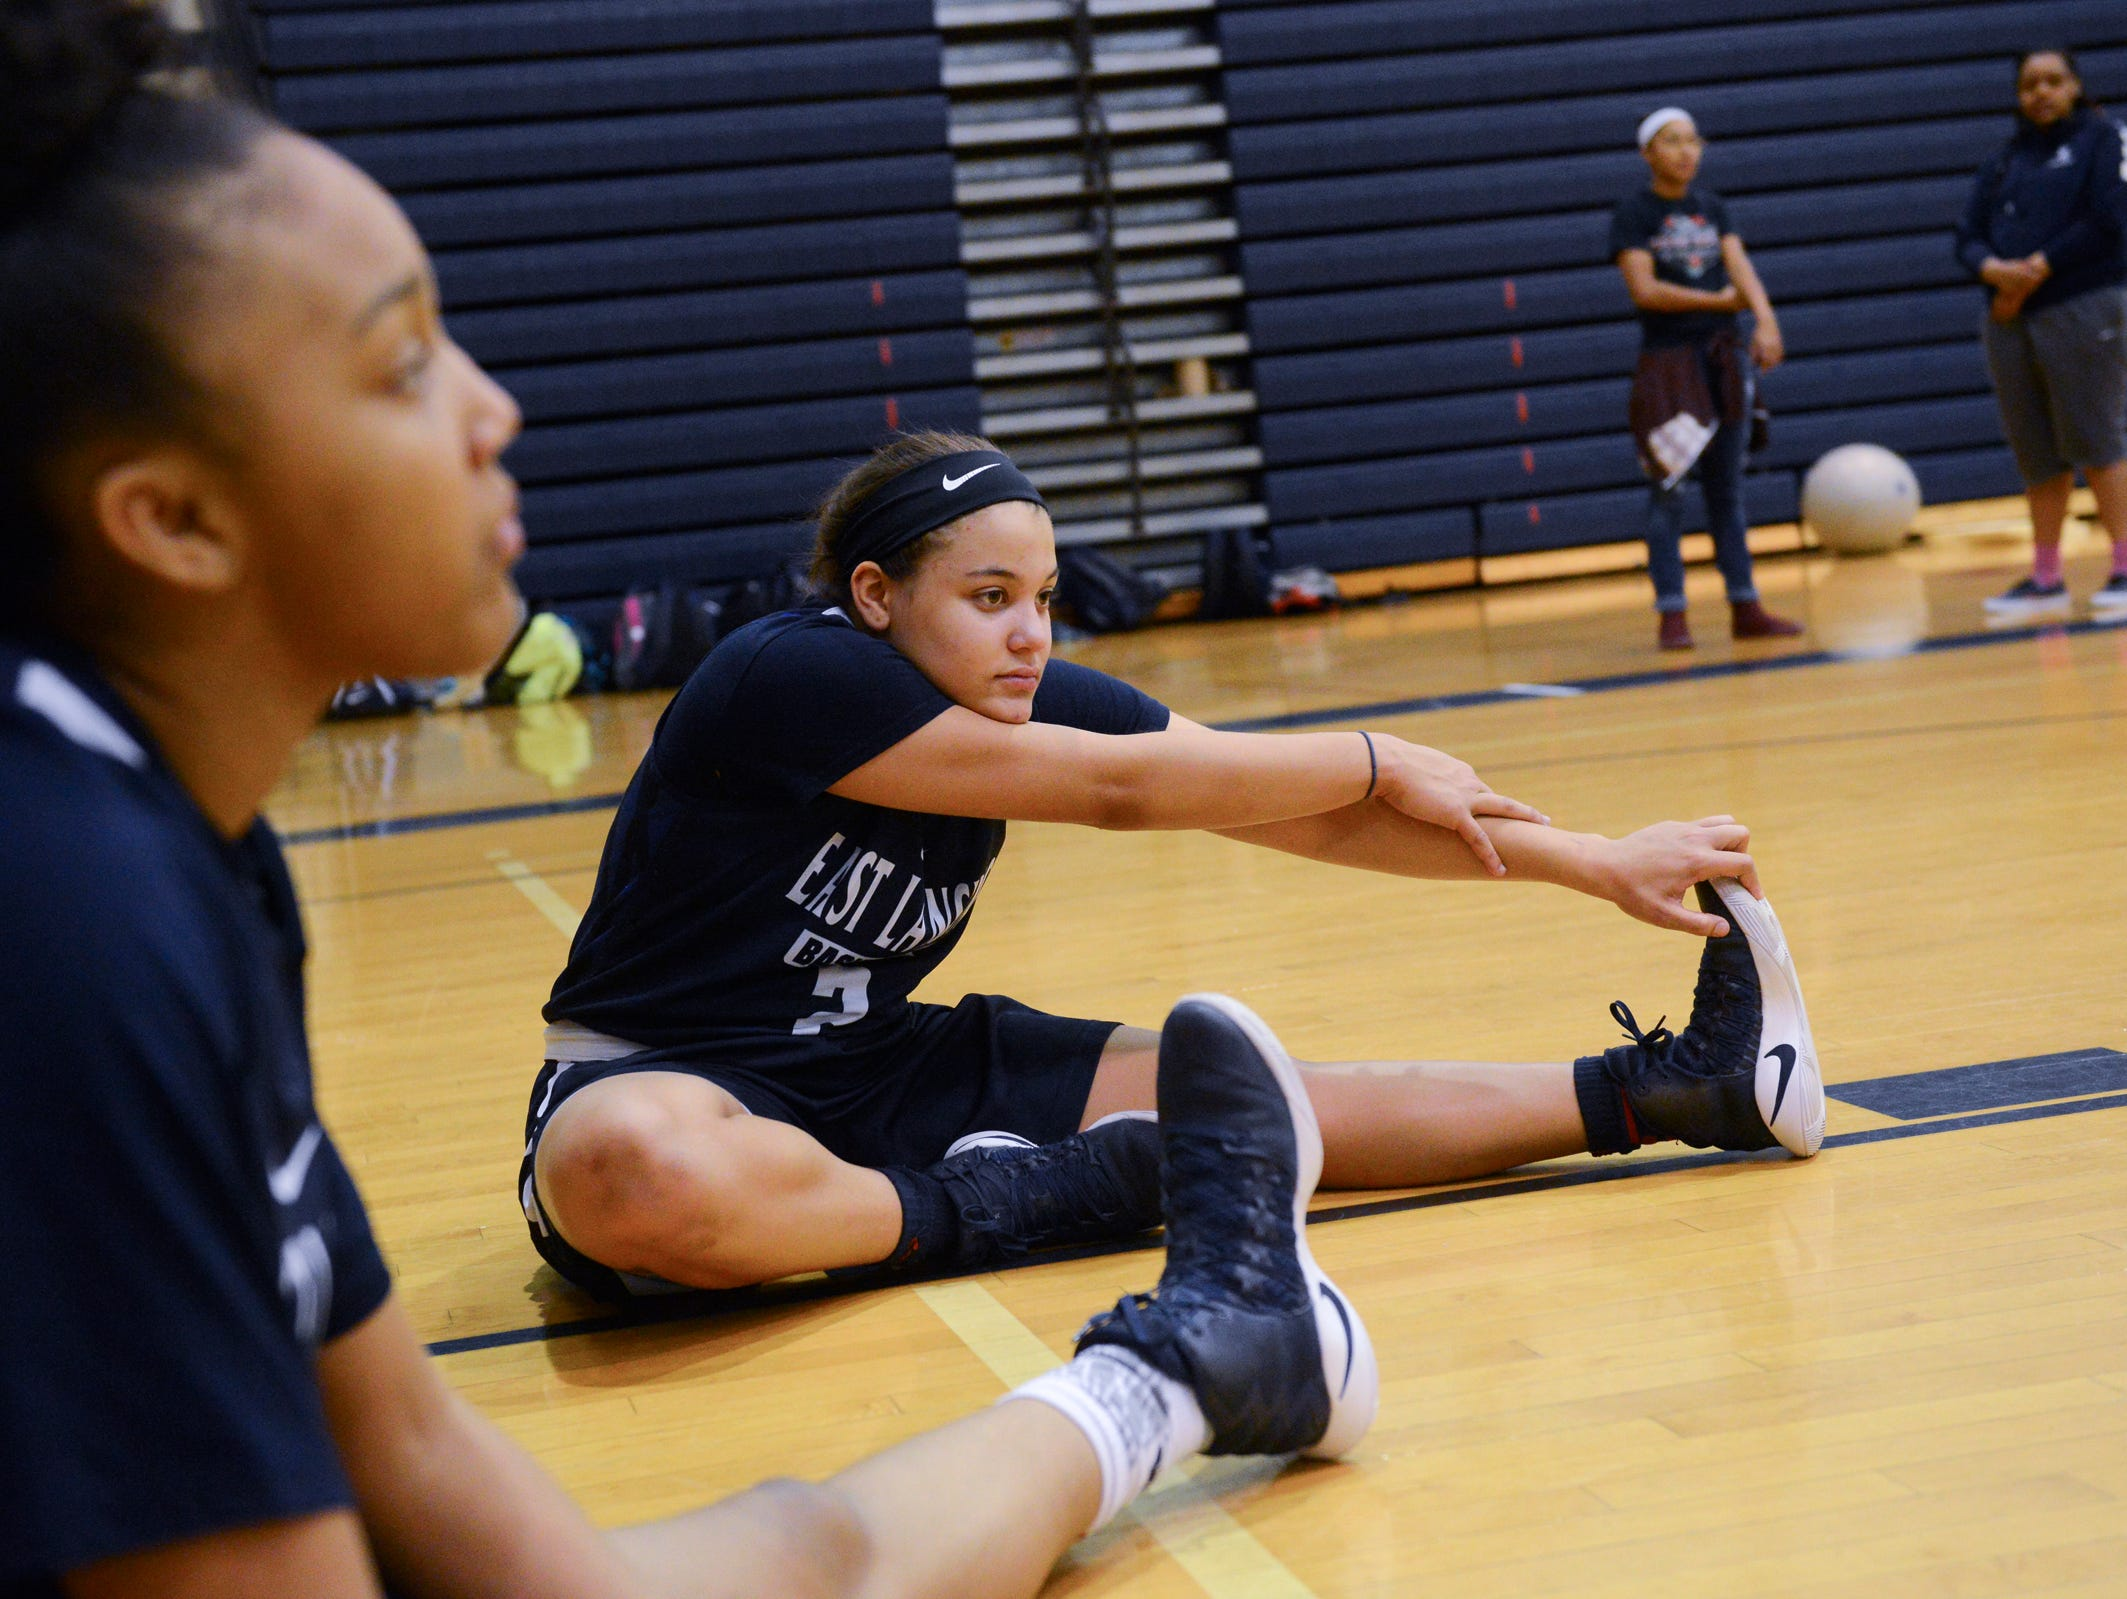 Amelia McNutt stretches on Thursday, Feb. 23, 2017 at East Lansing High School.